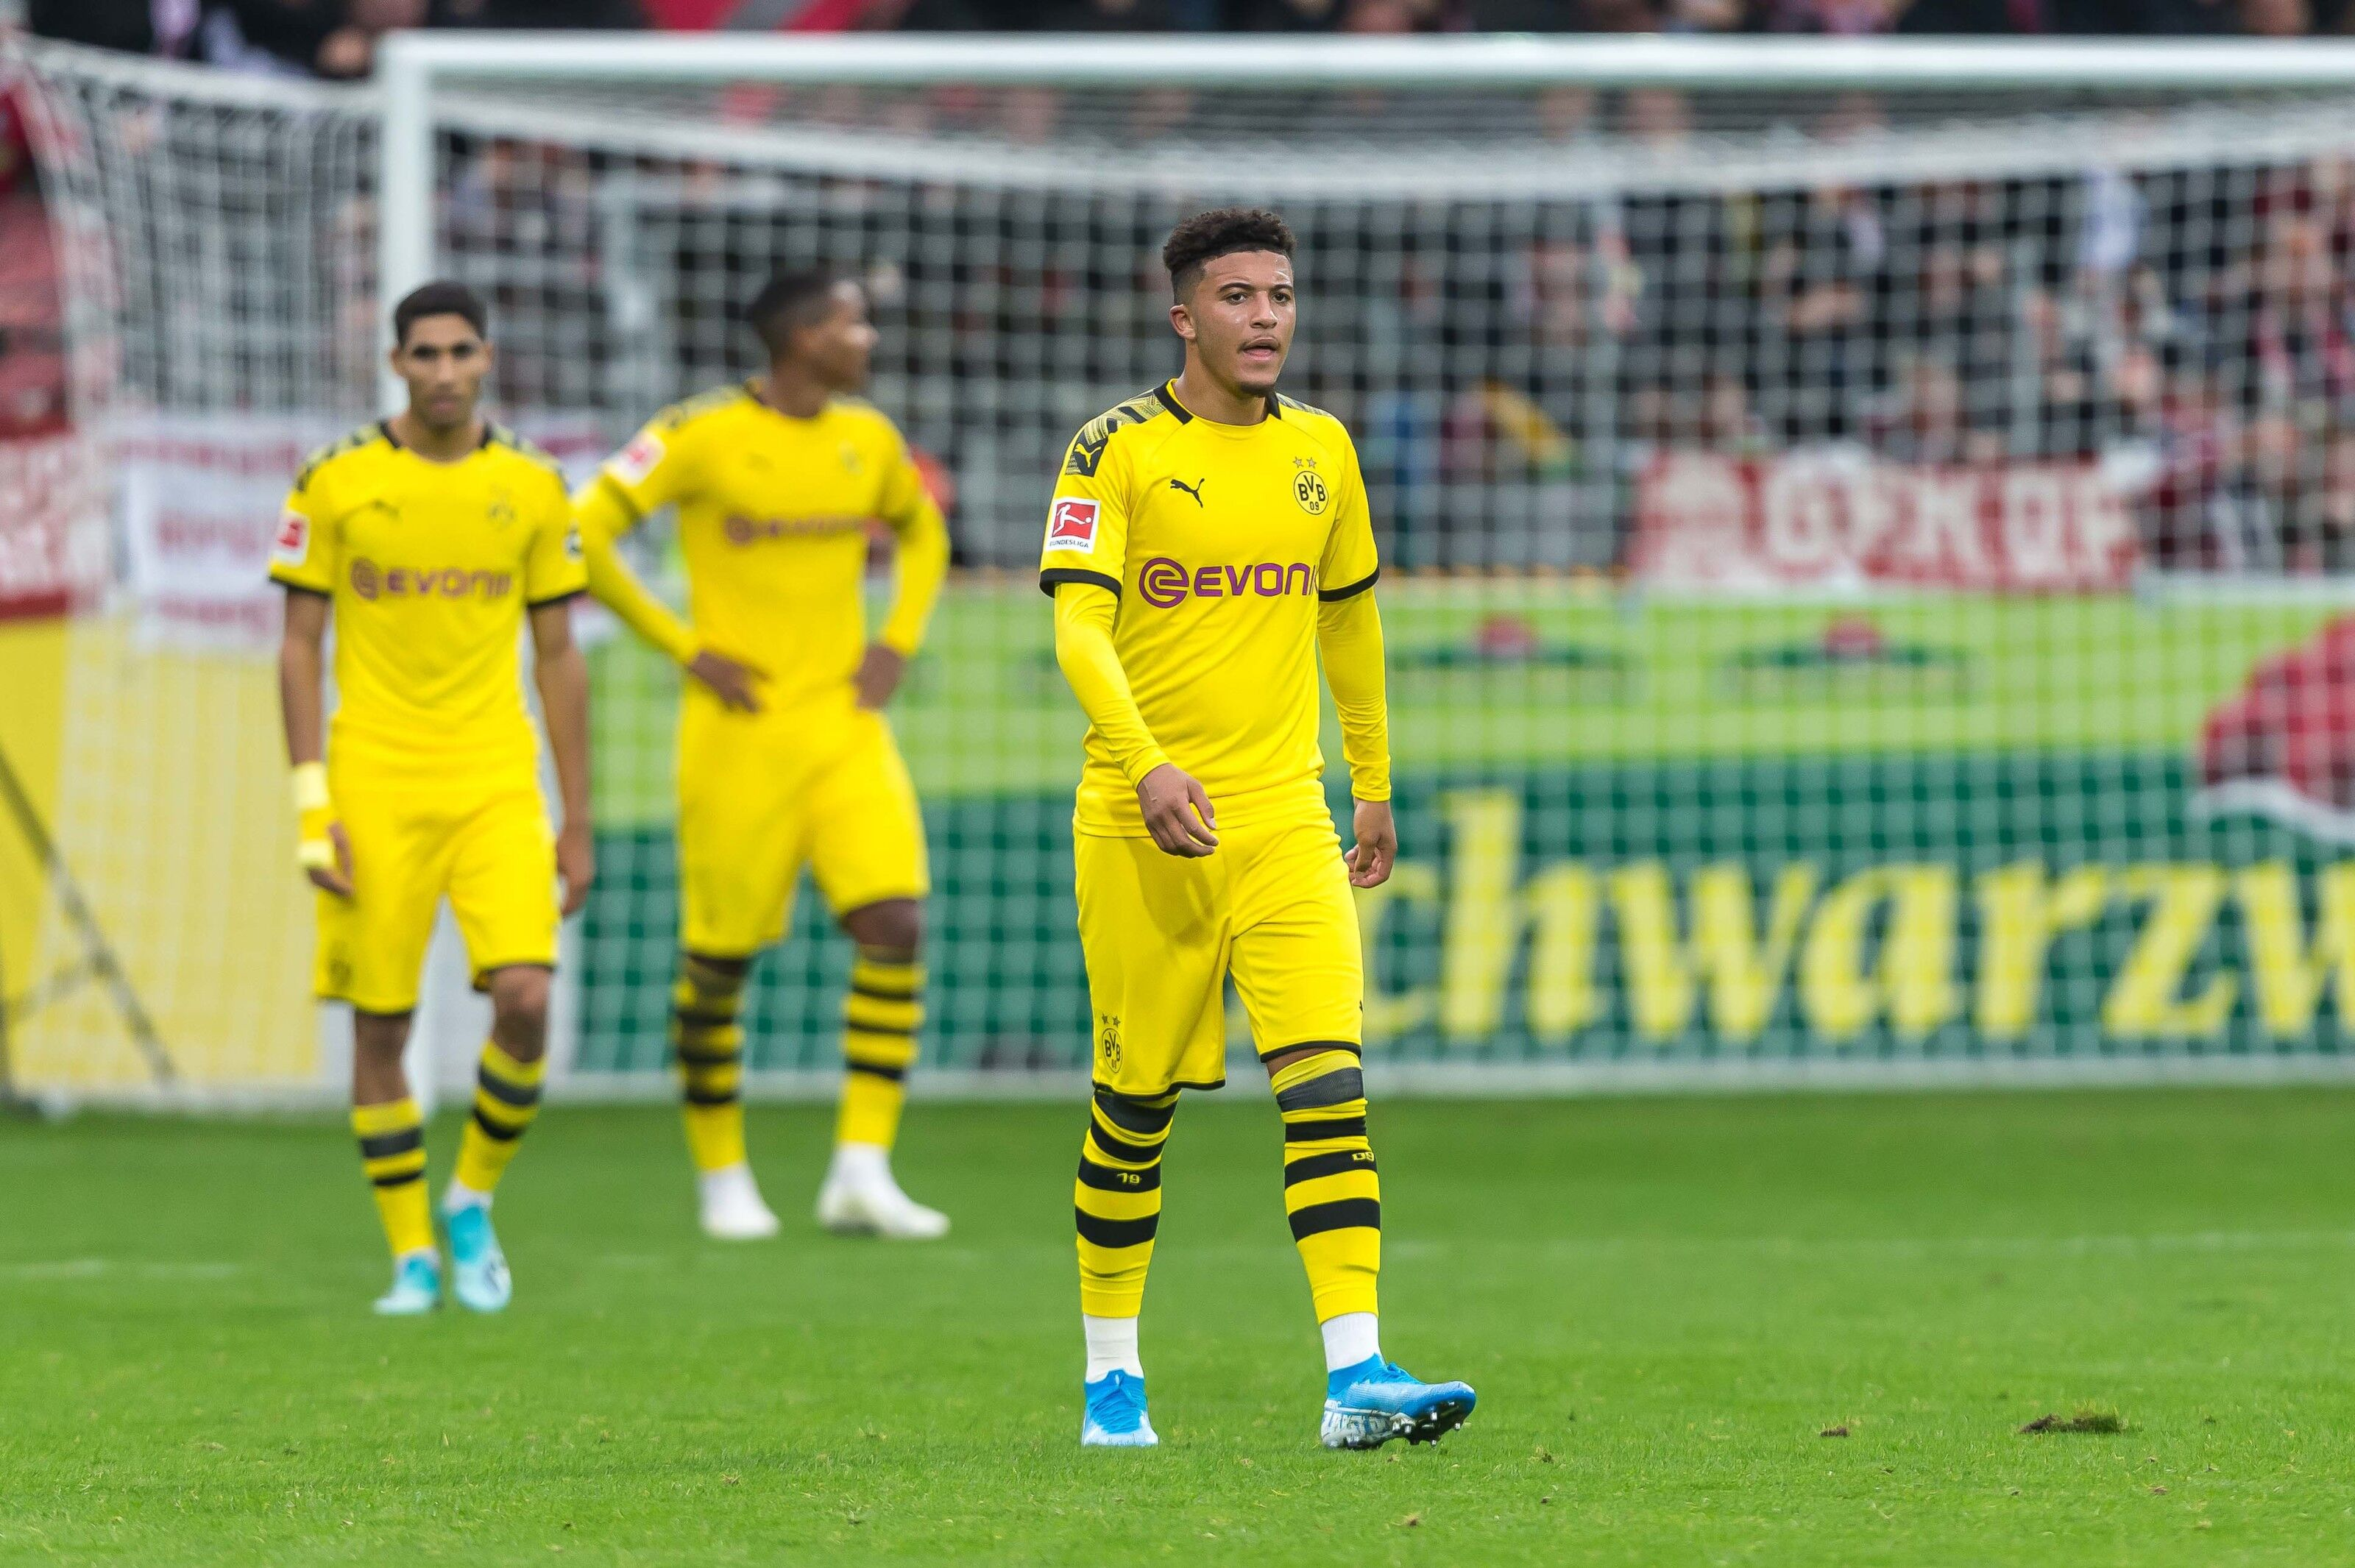 Bundesliga roundup: Borussia Dortmund drop points again with another 2-2 draw